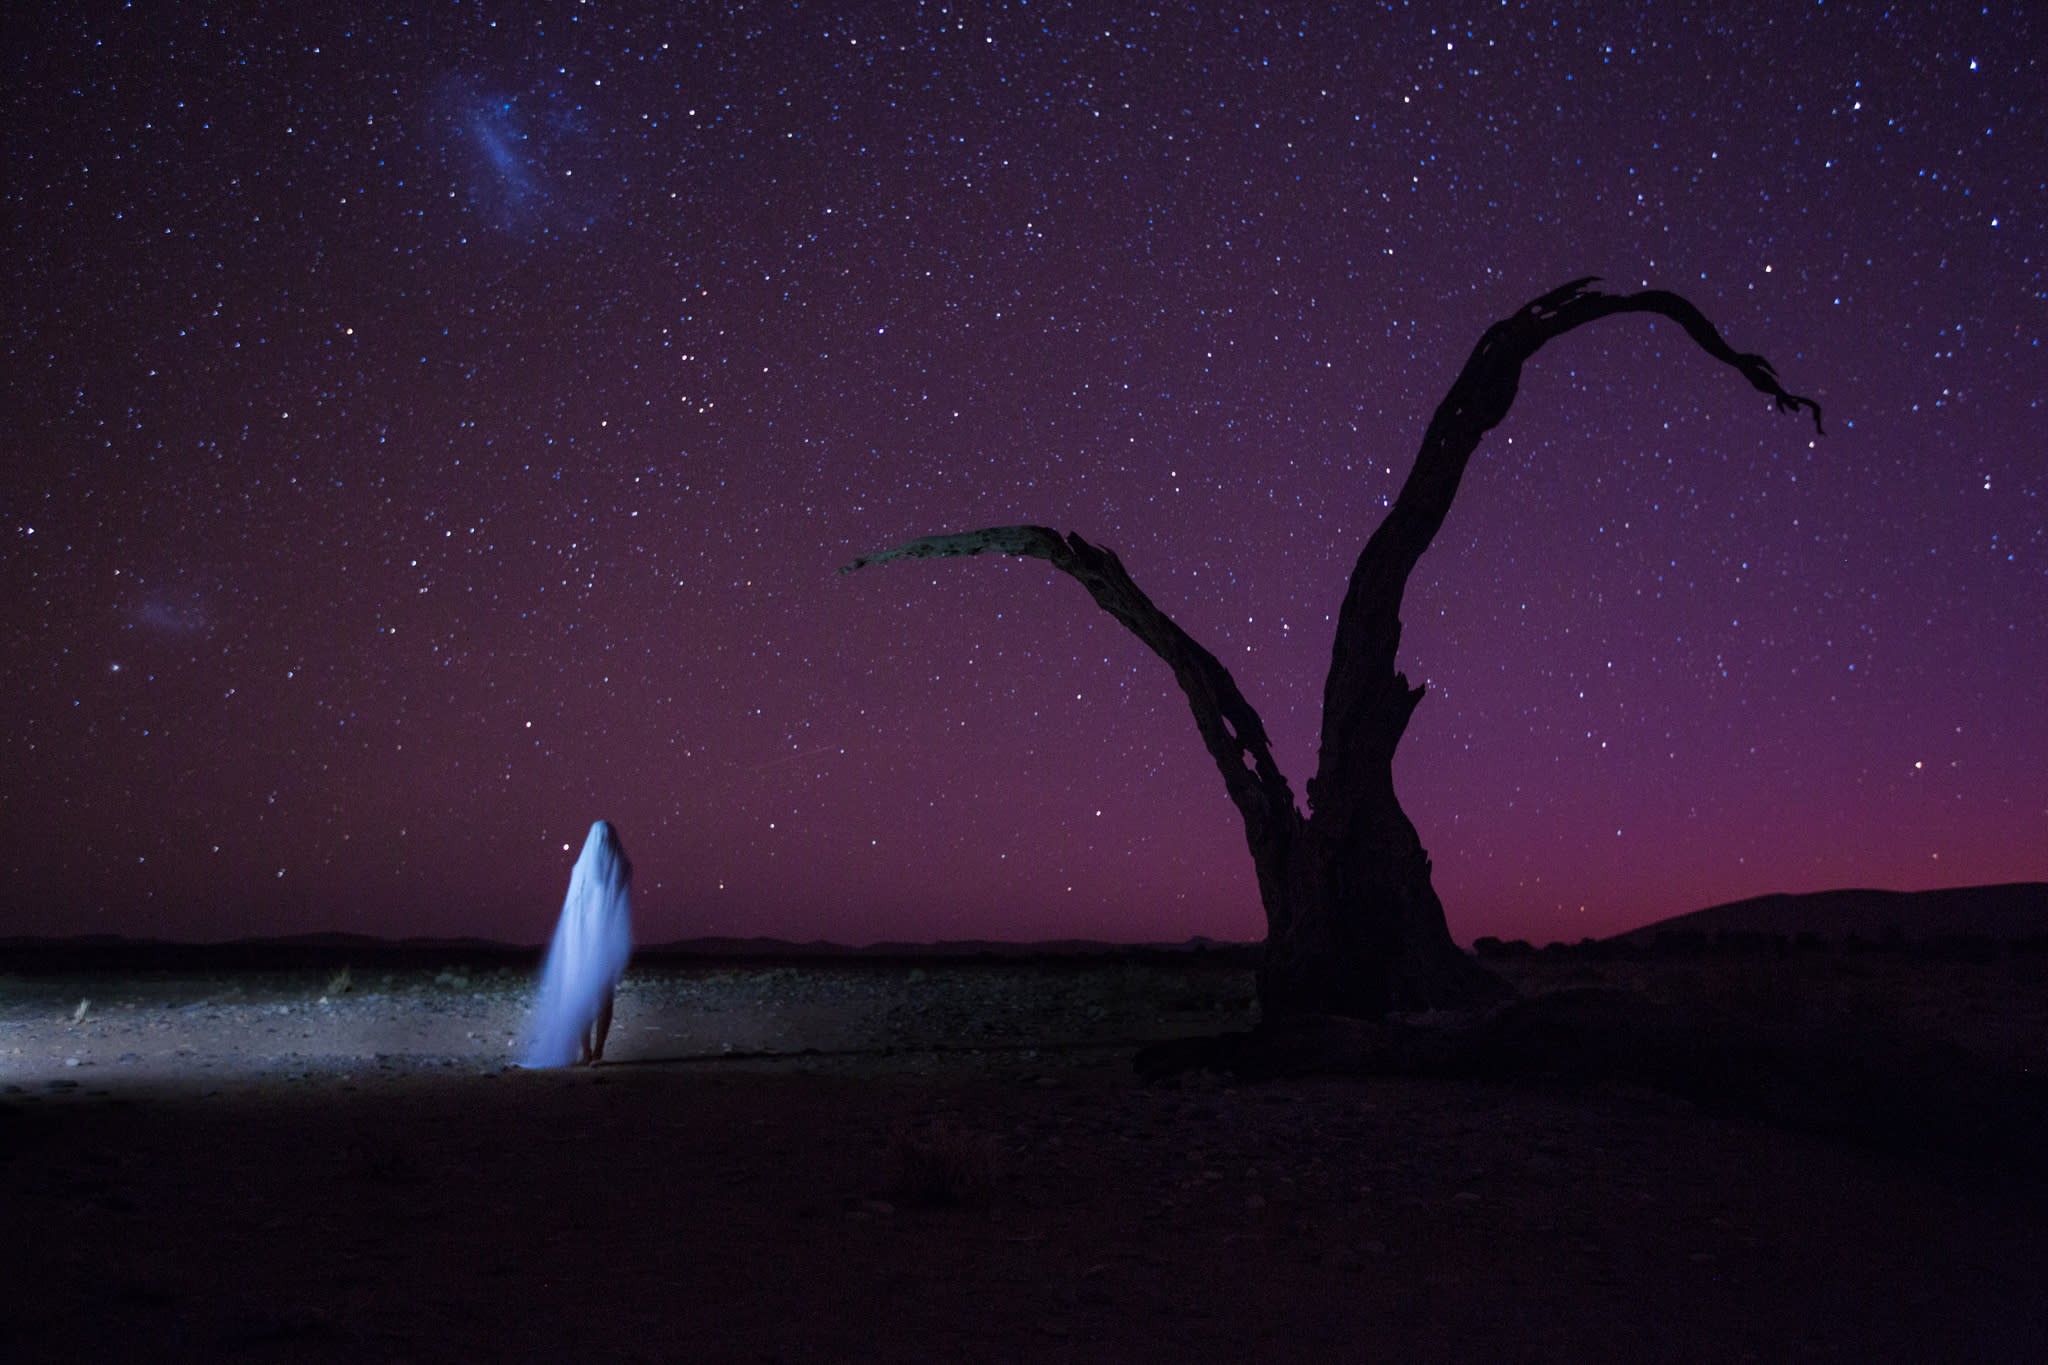 07 clayton woodley starry sky shot in namibia j6xl9h